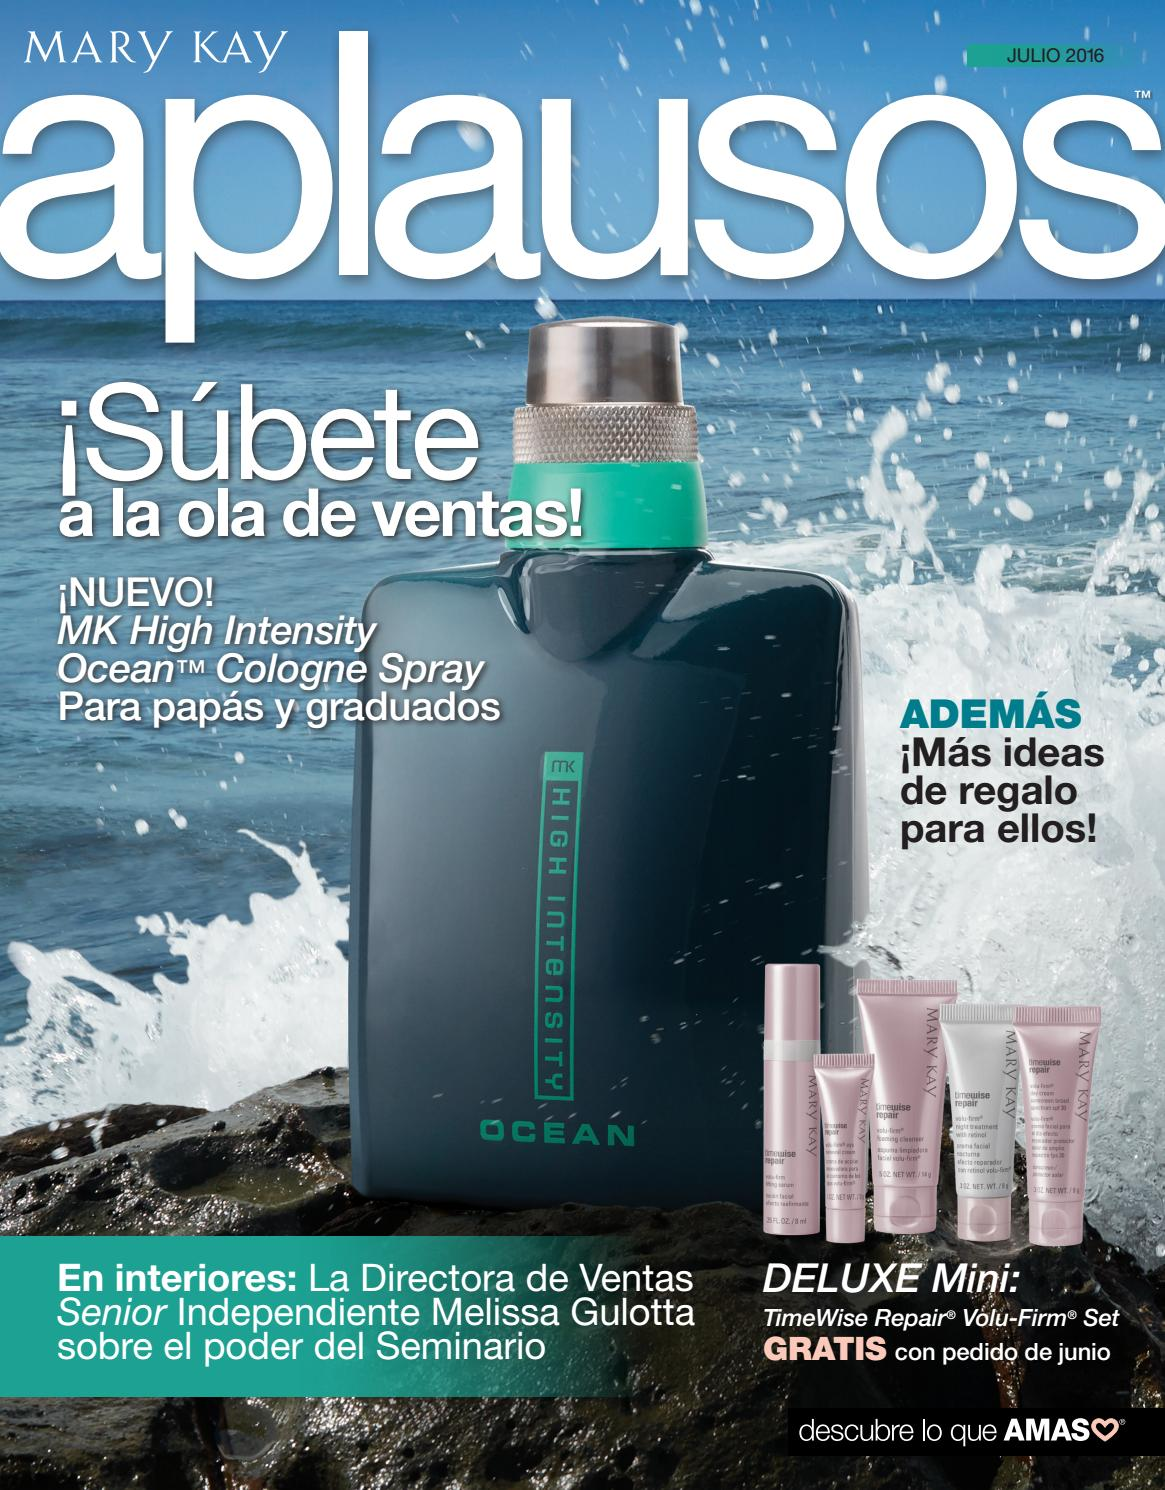 Mary kay online agreement on intouch - Aplausos De Julio